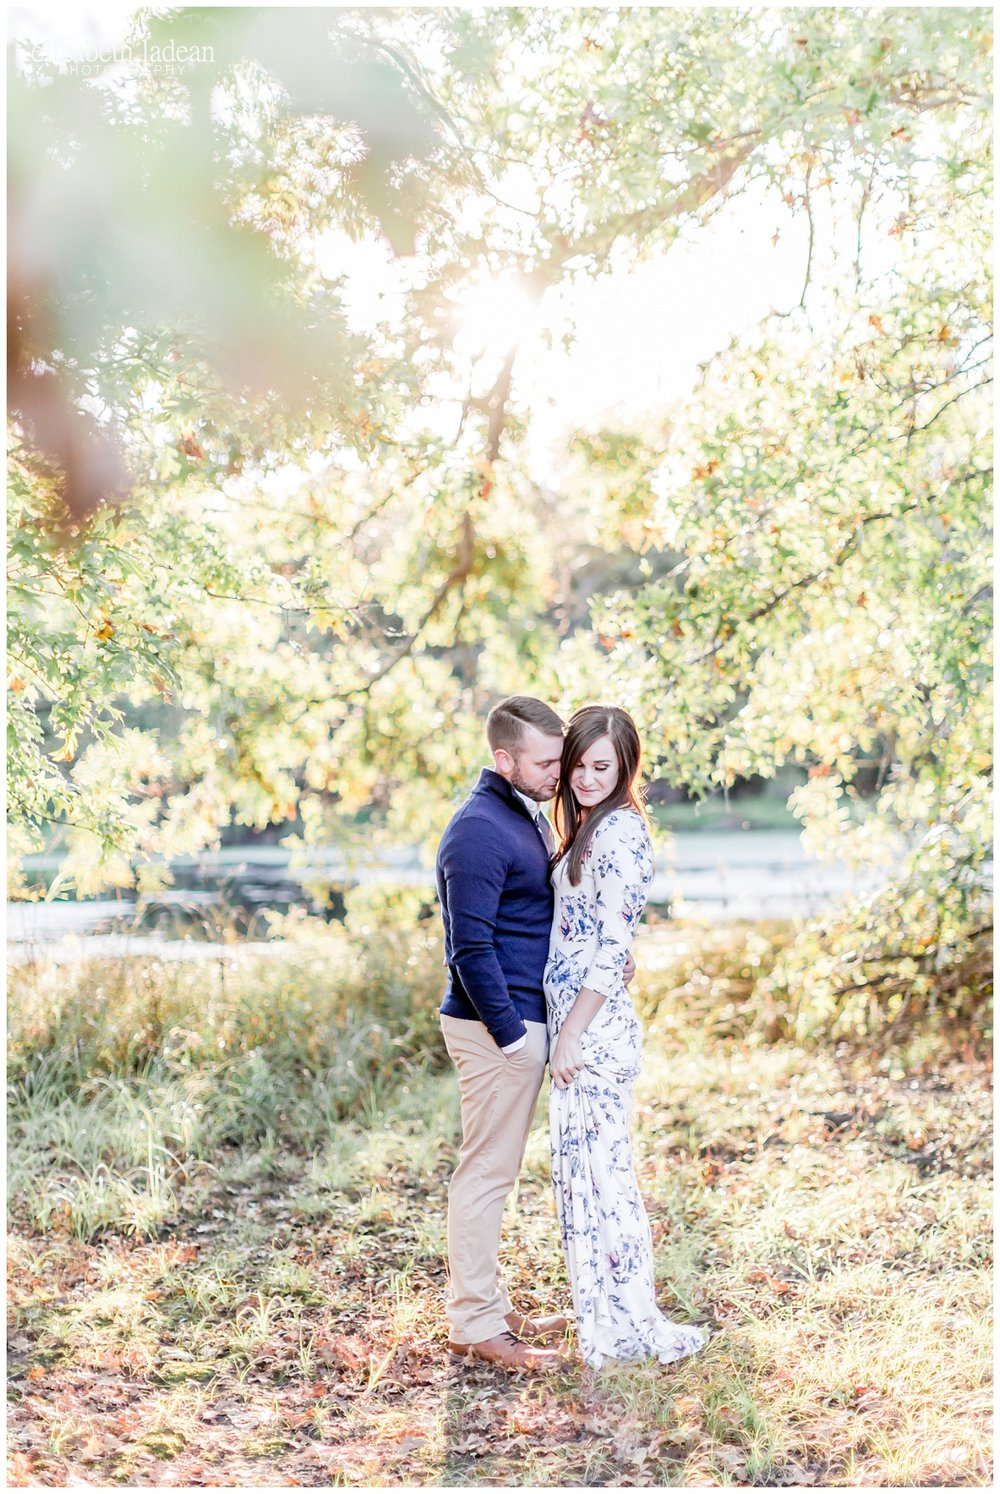 Kansas-City-KC-Engagement-Photographer-BO2017-Elizabeth-Ladean-Photography-photo-_5745.jpg